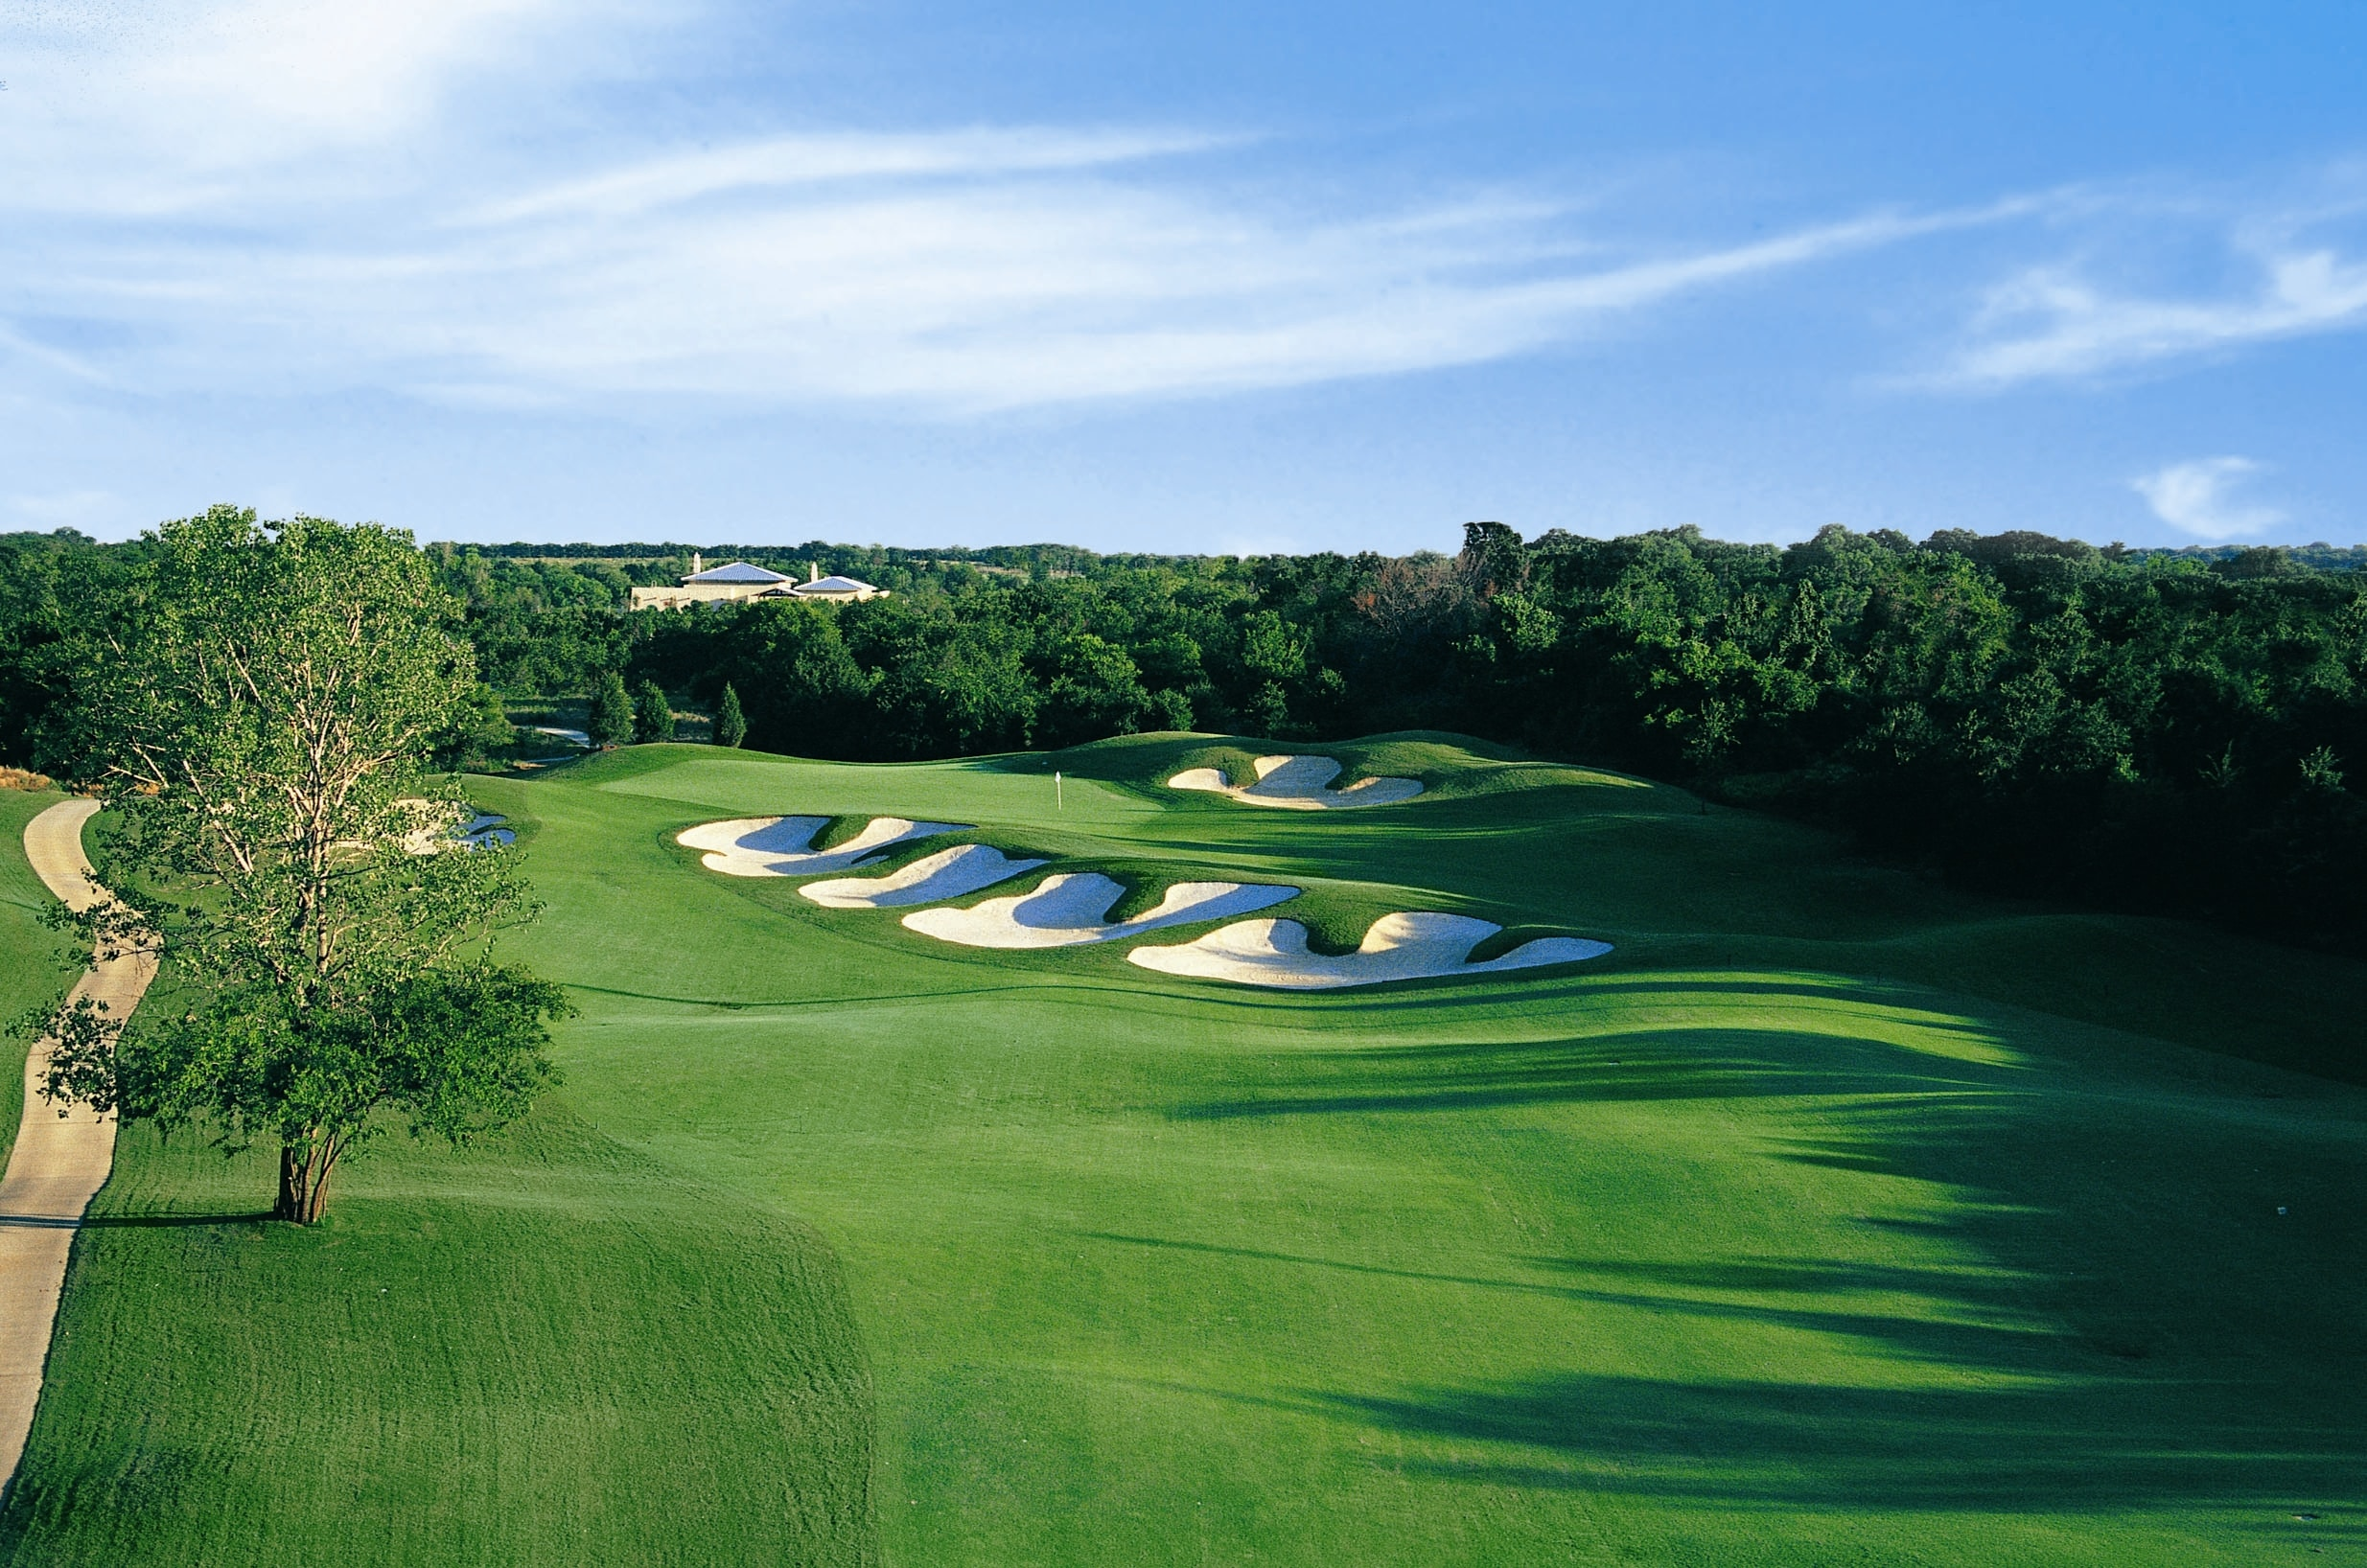 The Best Public Golf Courses in Dallas-Fort Worth